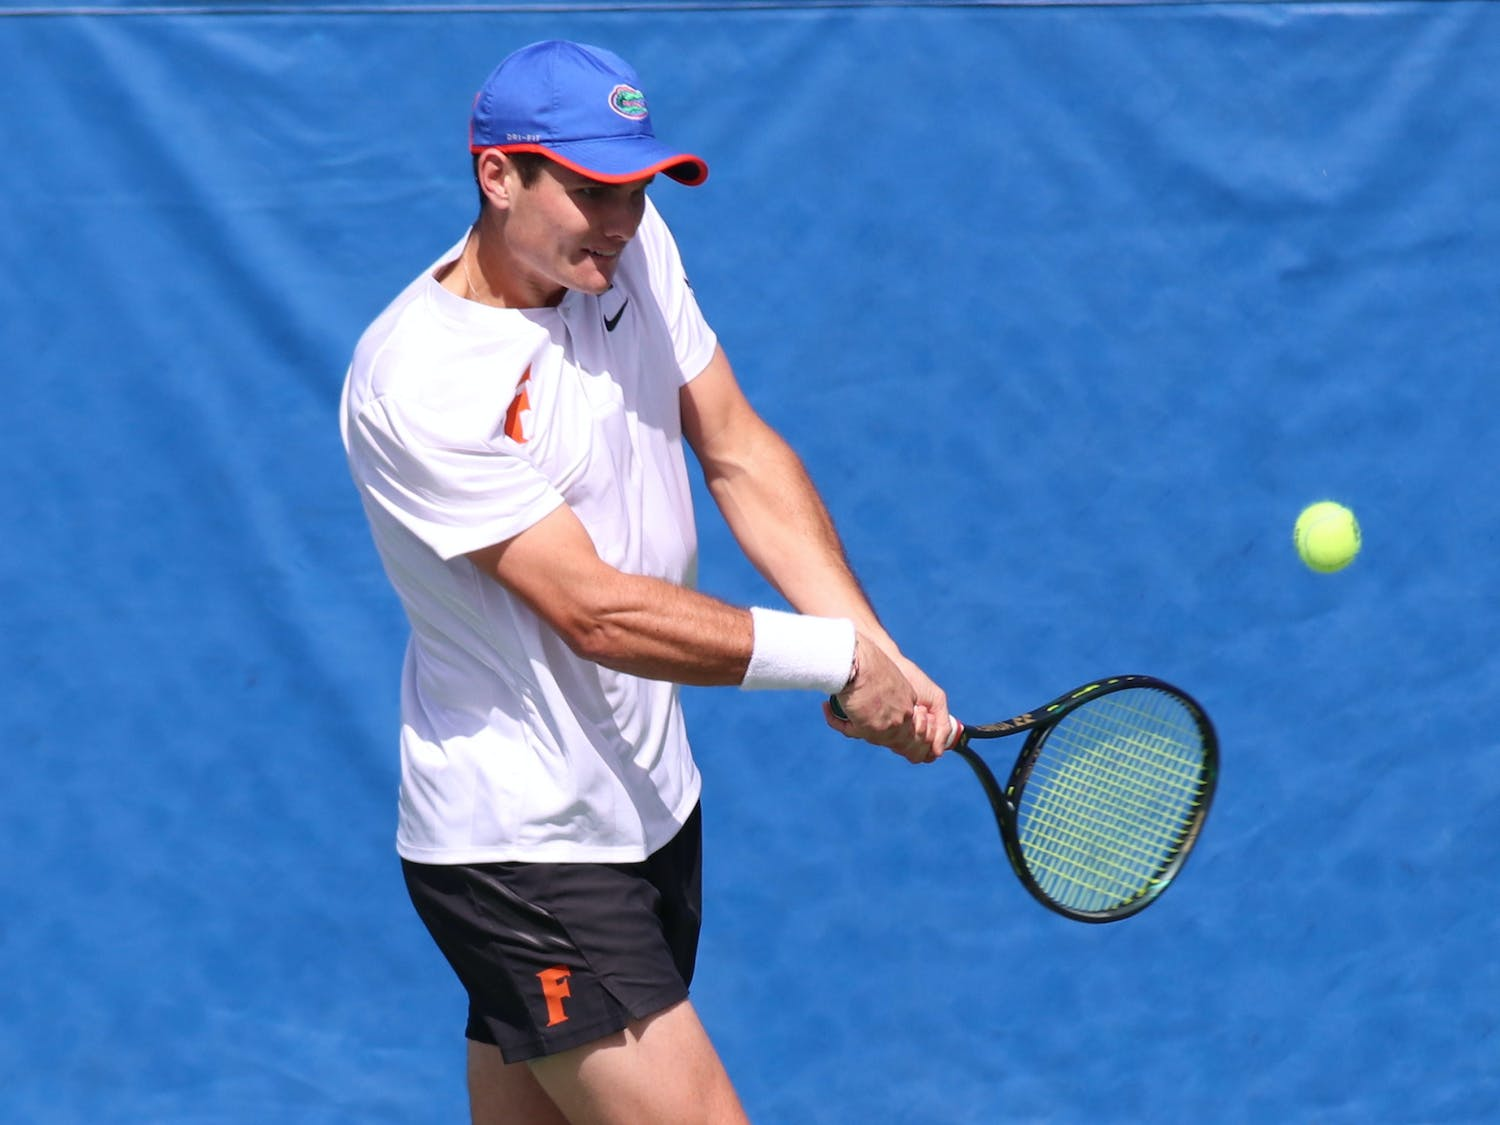 Seniors Andy Andrade and Duarte Vale and junior Sam Riffice combine for a 30-8 record. Photo from UF-Auburn match Feb. 21.